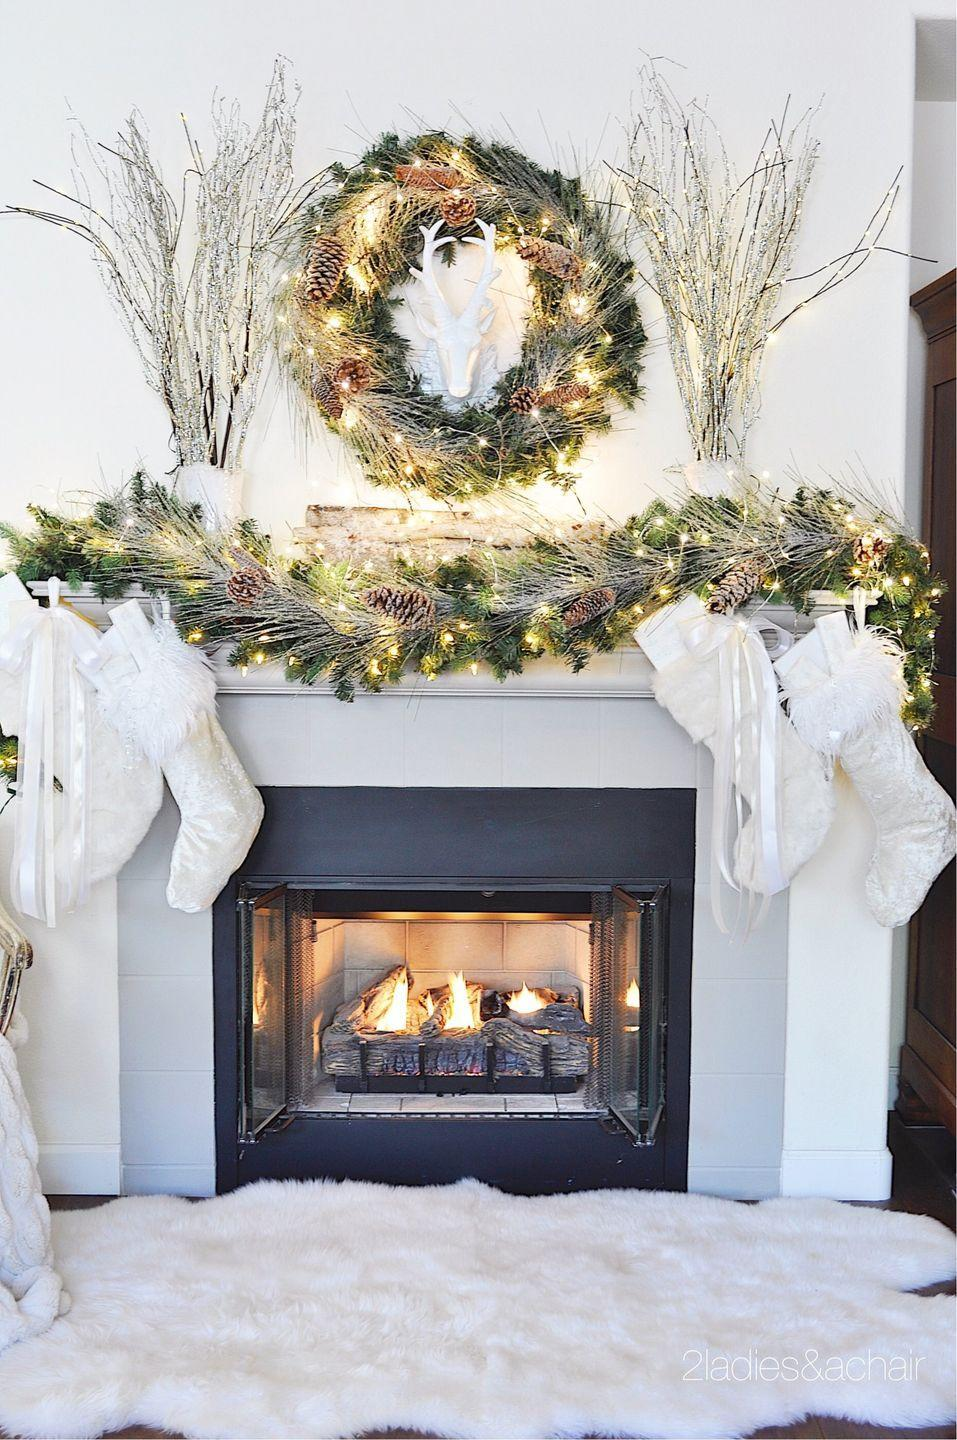 "<p>Make a real statement with a lit garland so big that you can't even see your mantel anymore. Complete the look with a matching wreath and equally large branches. </p><p><em>See more at <a href=""https://2ladiesandachair.com/blog/2017/11/26/christmas-home-decorating-ideas-for-a-beautiful-holiday"" rel=""nofollow noopener"" target=""_blank"" data-ylk=""slk:2 Ladies and a Chair"" class=""link rapid-noclick-resp"">2 Ladies and a Chair</a>.</em></p><p><a class=""link rapid-noclick-resp"" href=""https://www.amazon.com/Pursuestar-Lifelike-Branches-Artificial-Decoration/dp/B07TLXSW2C/?tag=syn-yahoo-20&ascsubtag=%5Bartid%7C10072.g.34484299%5Bsrc%7Cyahoo-us"" rel=""nofollow noopener"" target=""_blank"" data-ylk=""slk:SHOP WILLOW BRANCHES"">SHOP WILLOW BRANCHES</a></p>"